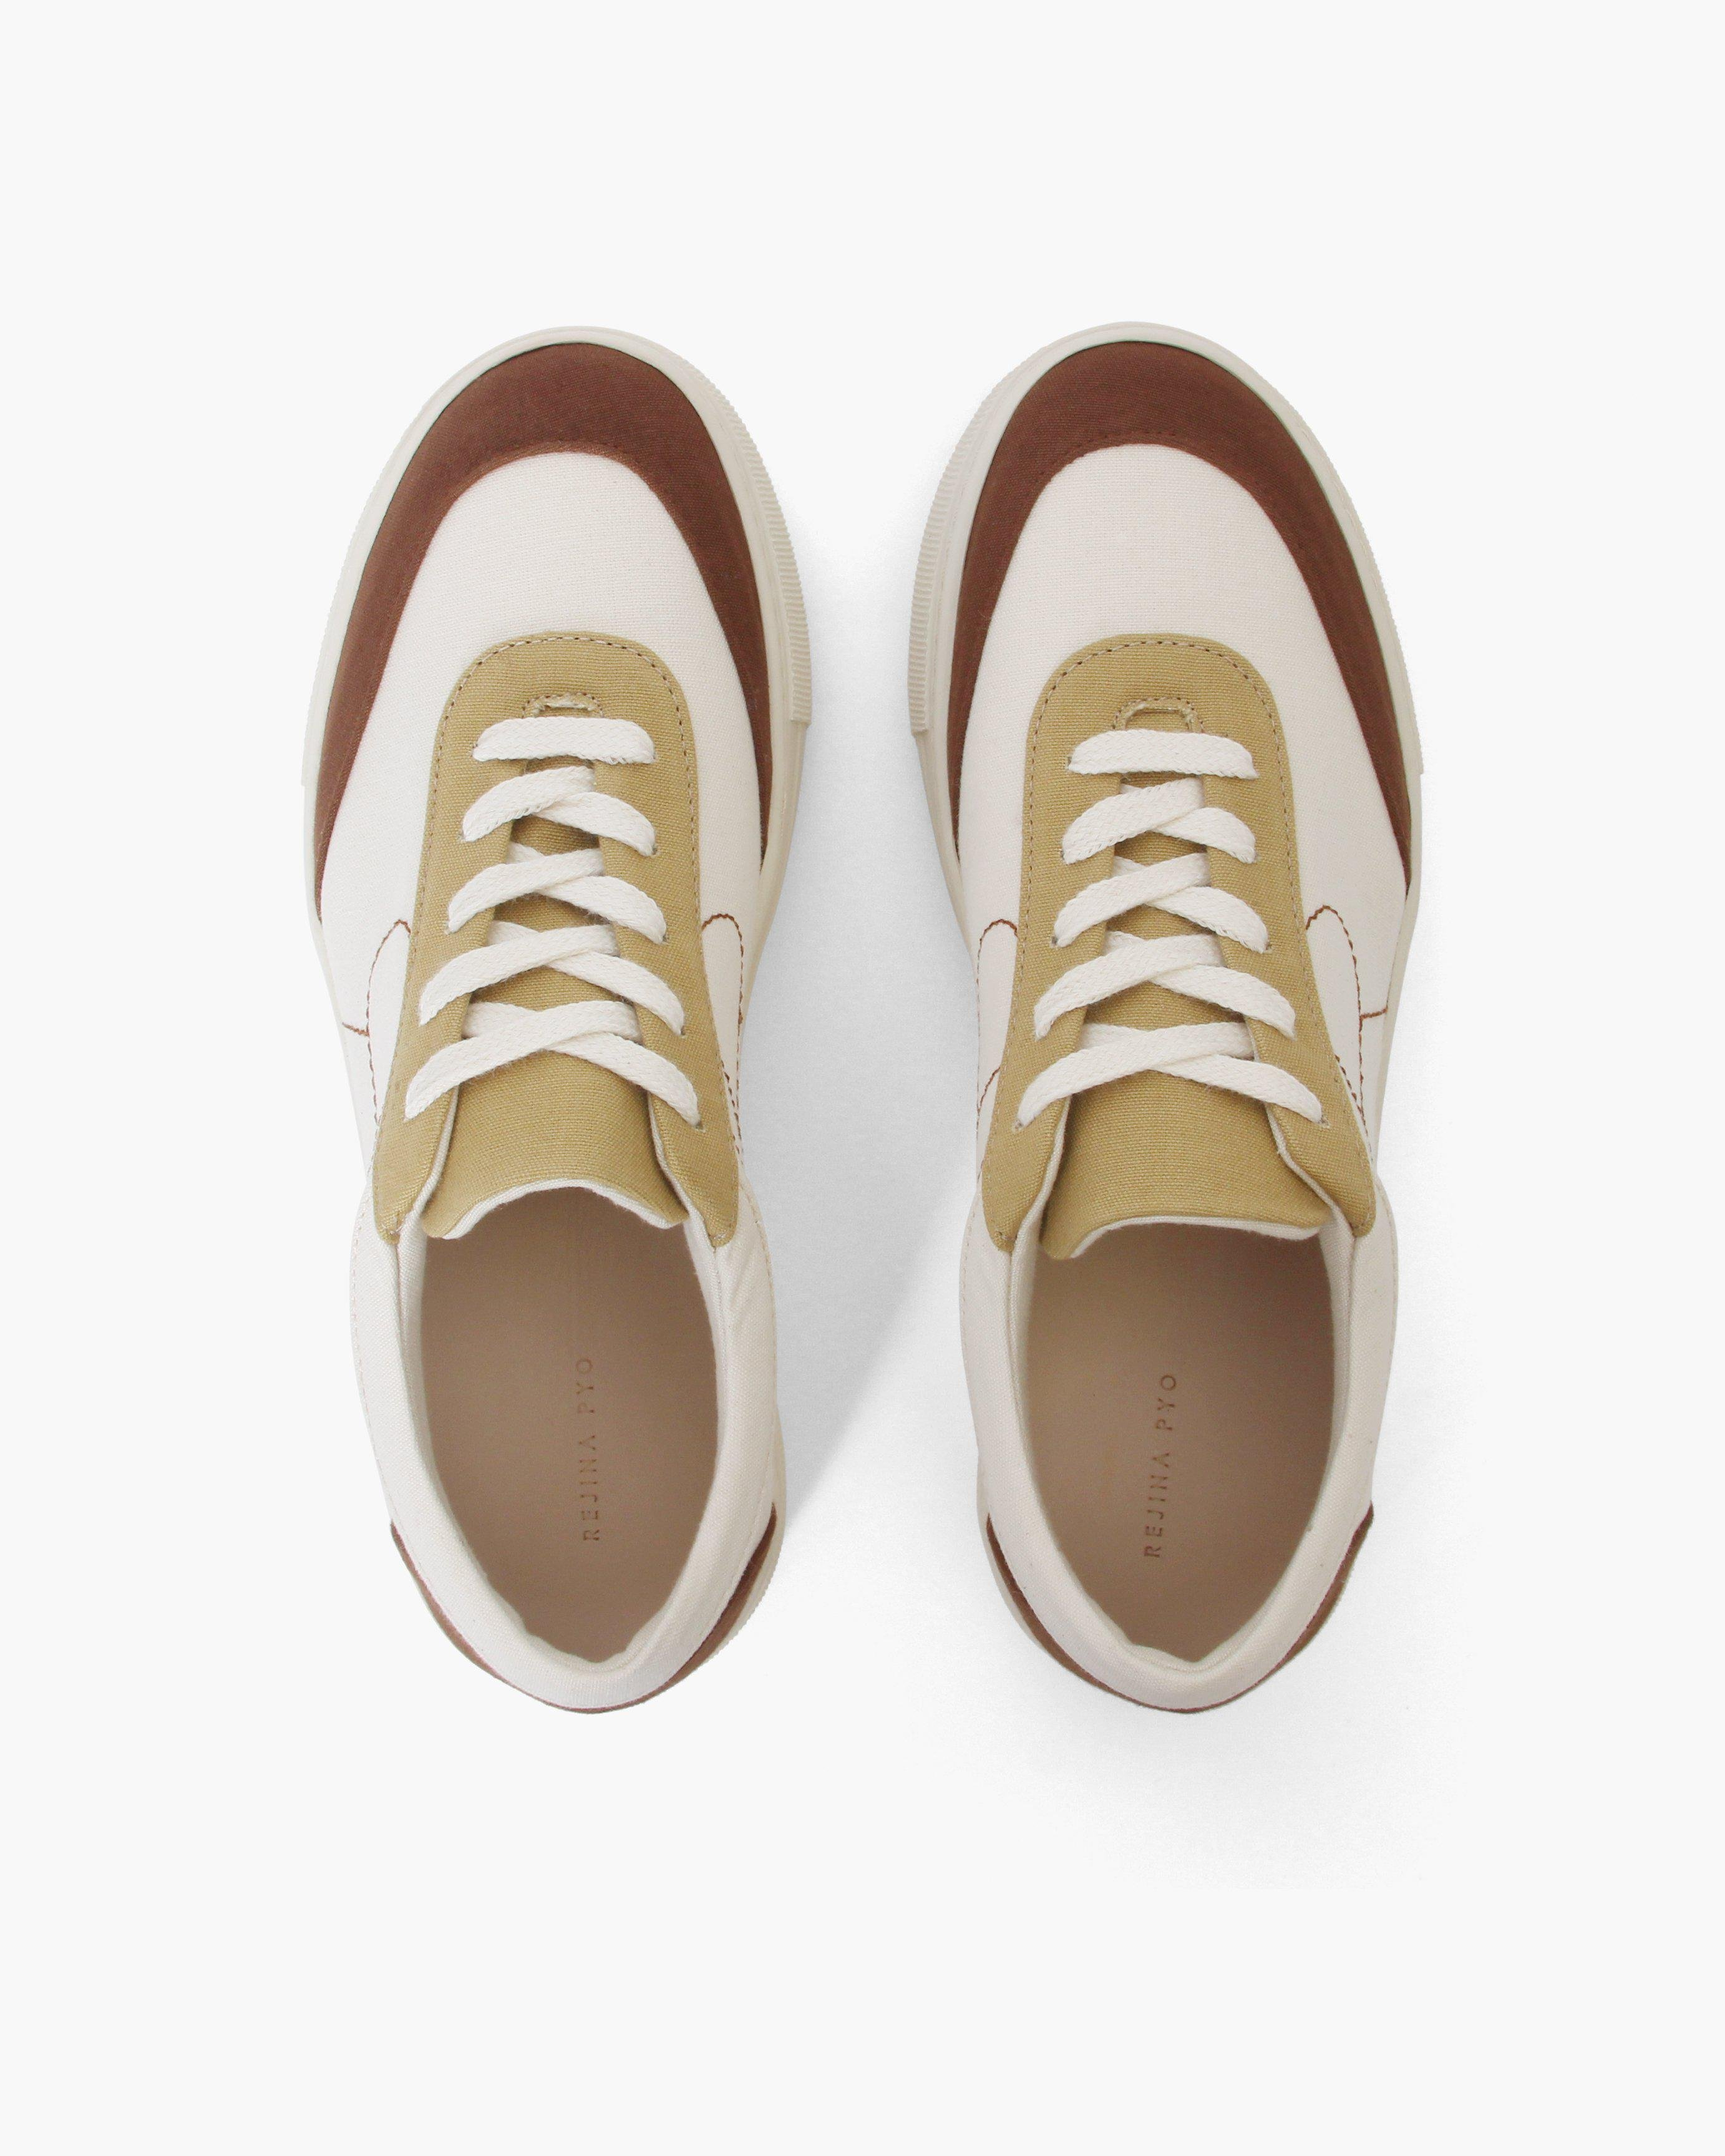 Bailey Sneakers Cotton Canvas Coffee - SALE 3